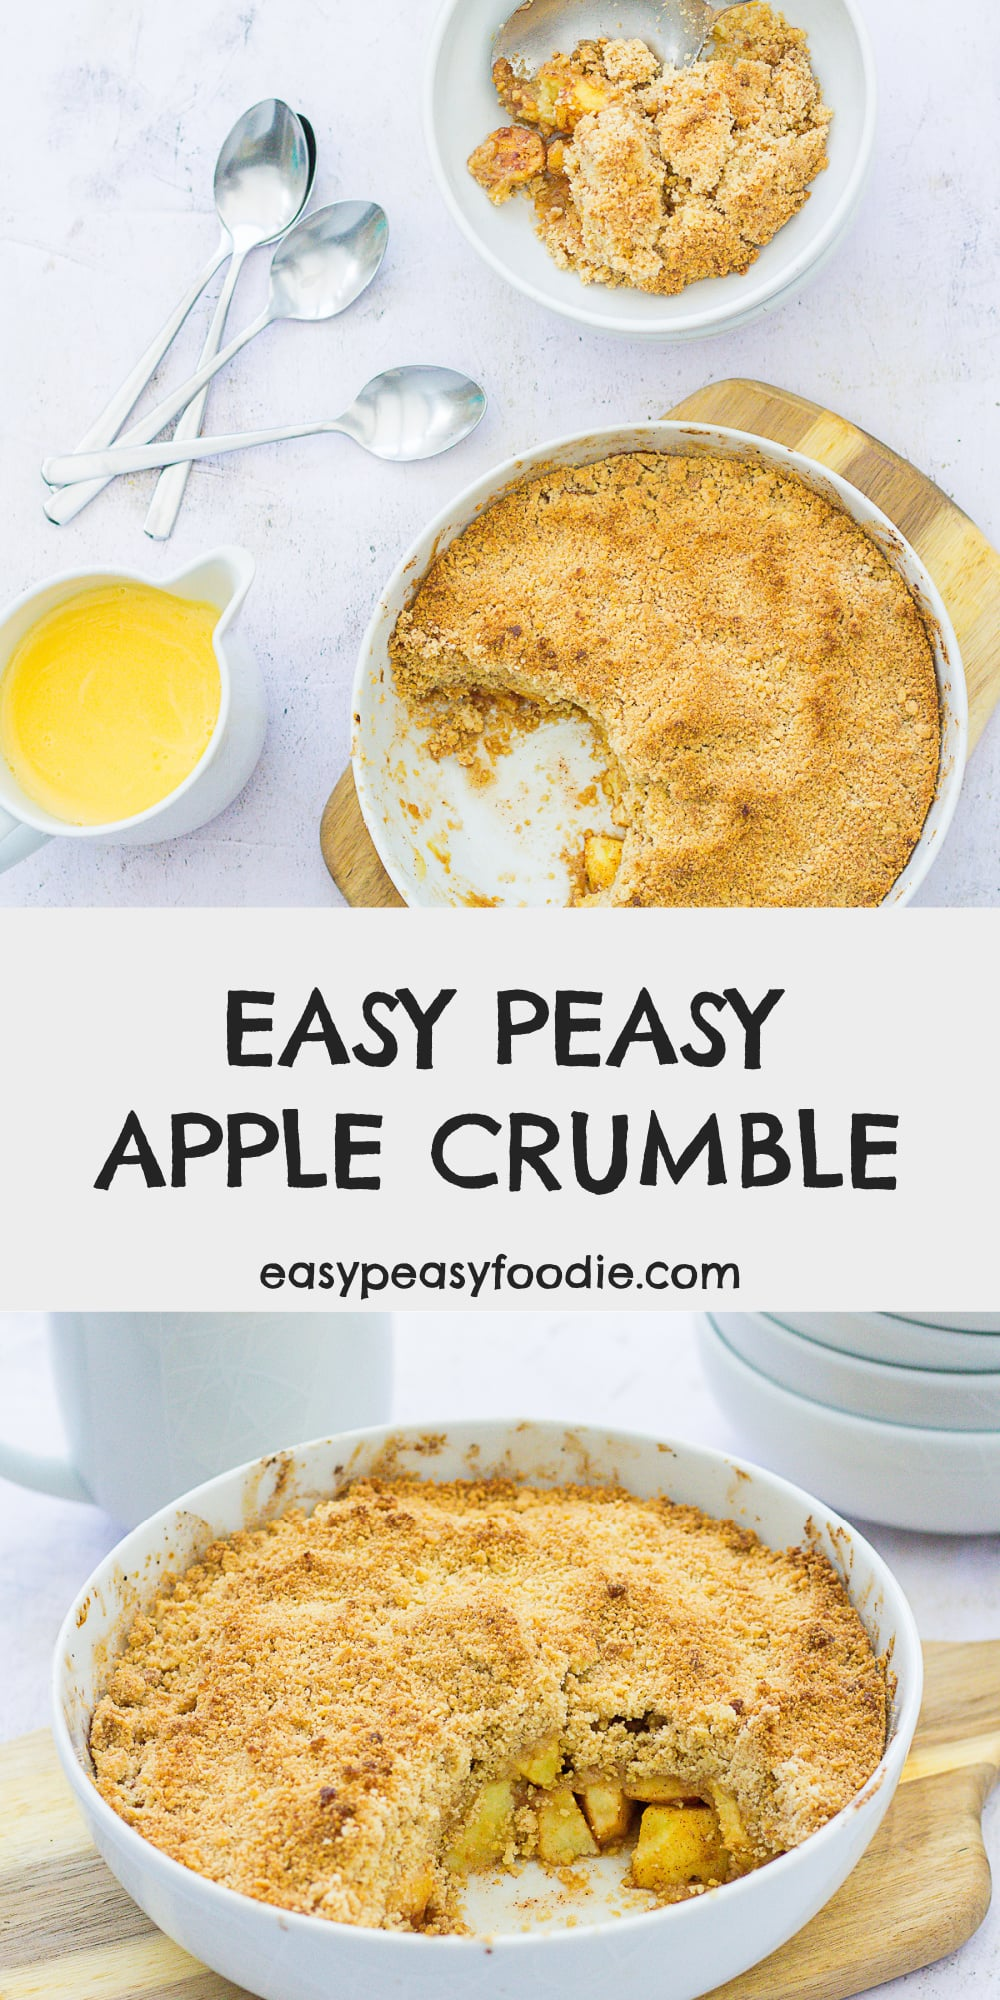 You really can't beat a classic! This Easy Peasy Apple Crumble is quick, simple and virtually foolproof – giving you perfect apple crumble every time! #applecrumble #apple #apples #bramleyapples #crumble #fruitcrumble #easycrumble #easyapplecrumble #cinnamon #makeahead #easyentertaining #britishfood #pudding #dessert #britishfood #familyfood #easypeasyfoodie